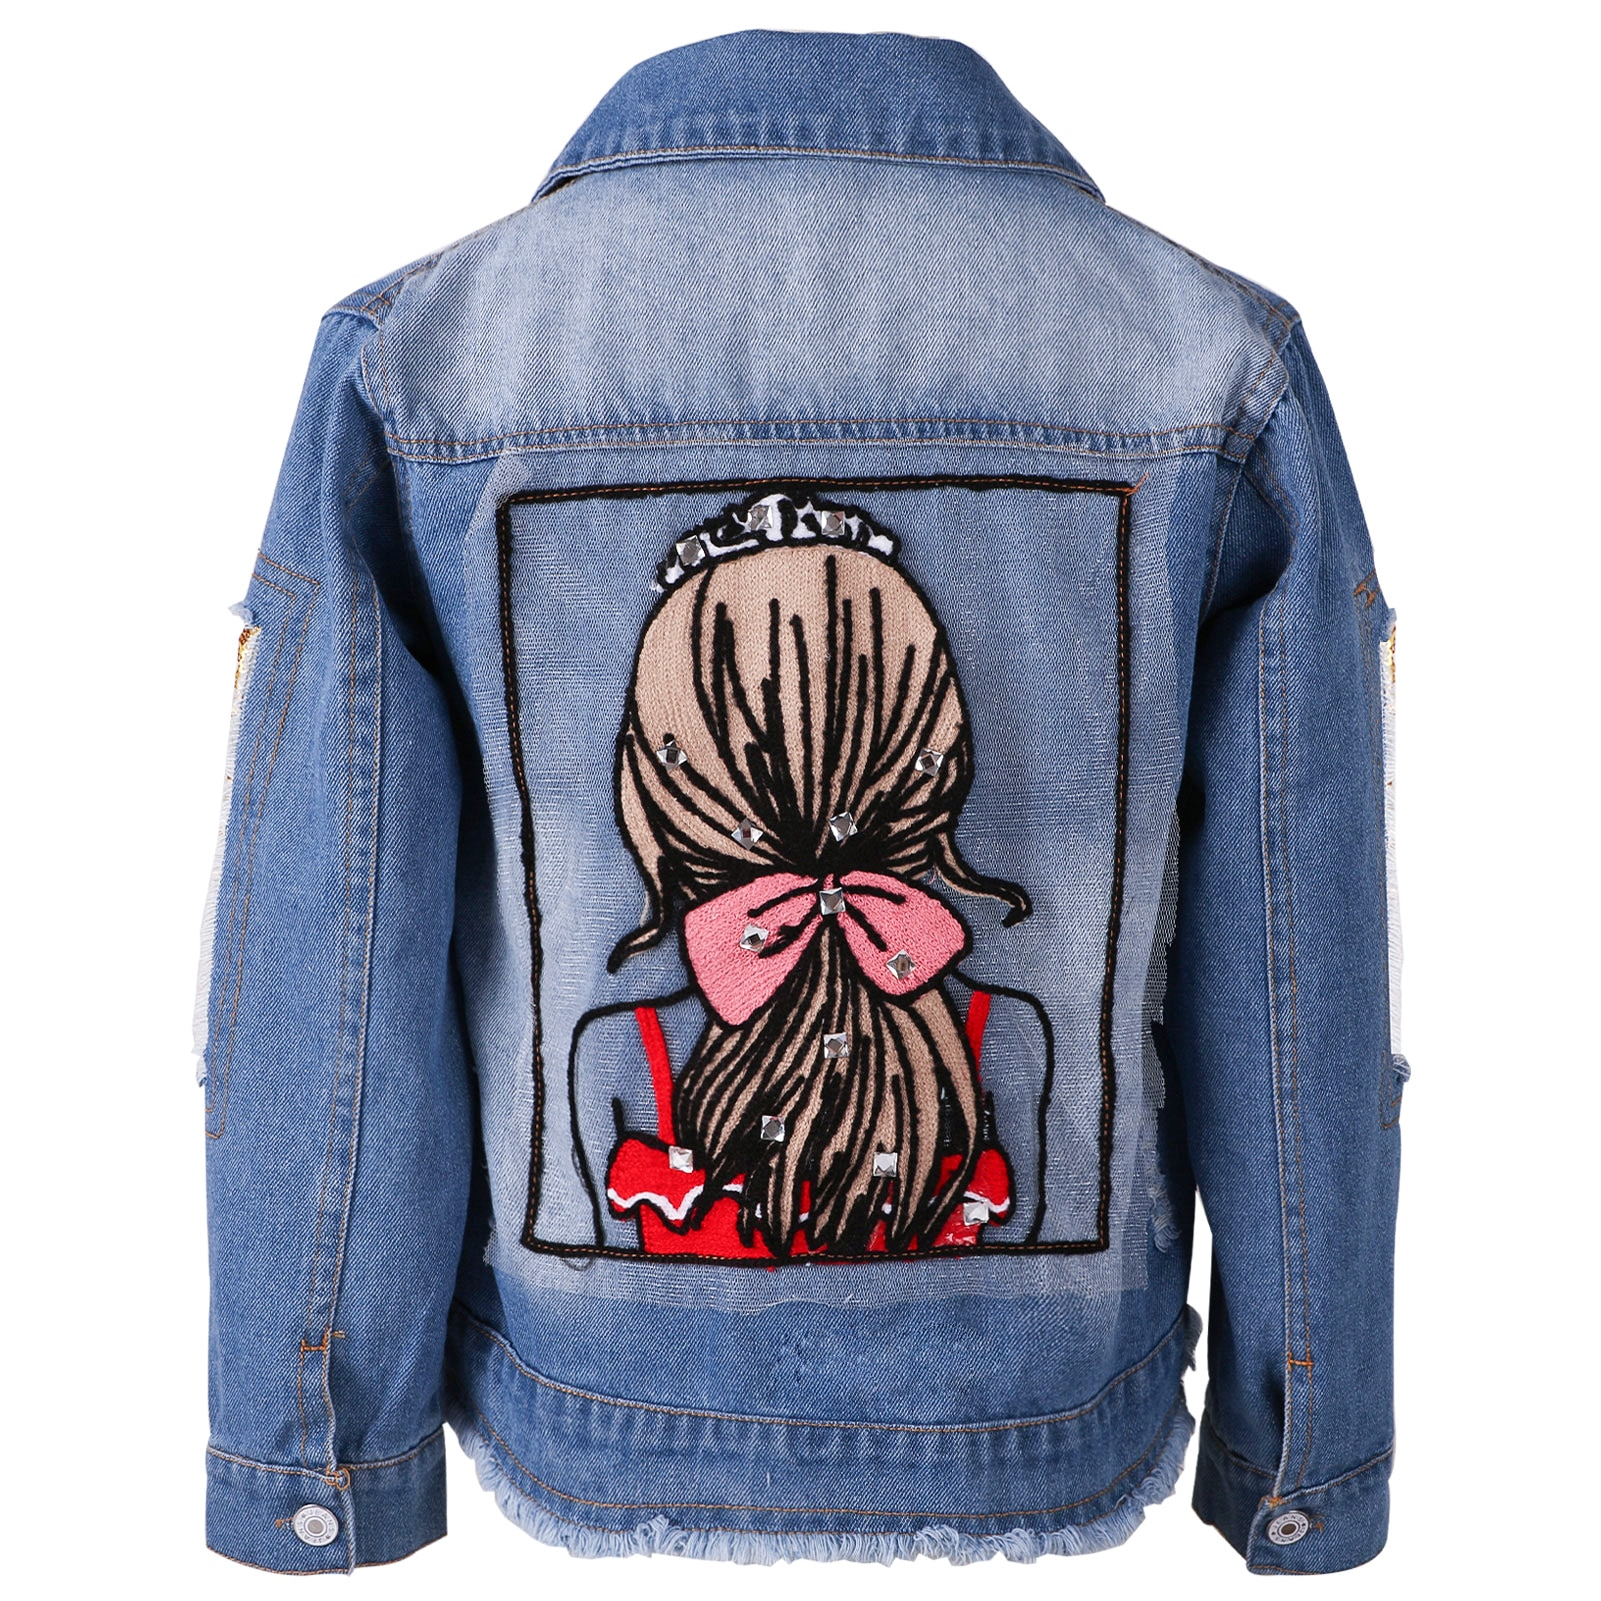 Girls Denim Jacket Sequins Appliques Long Sleeve Cardigans Coat Single-Breasted Cute Outerwear for 2-12T Toddlers Clothes